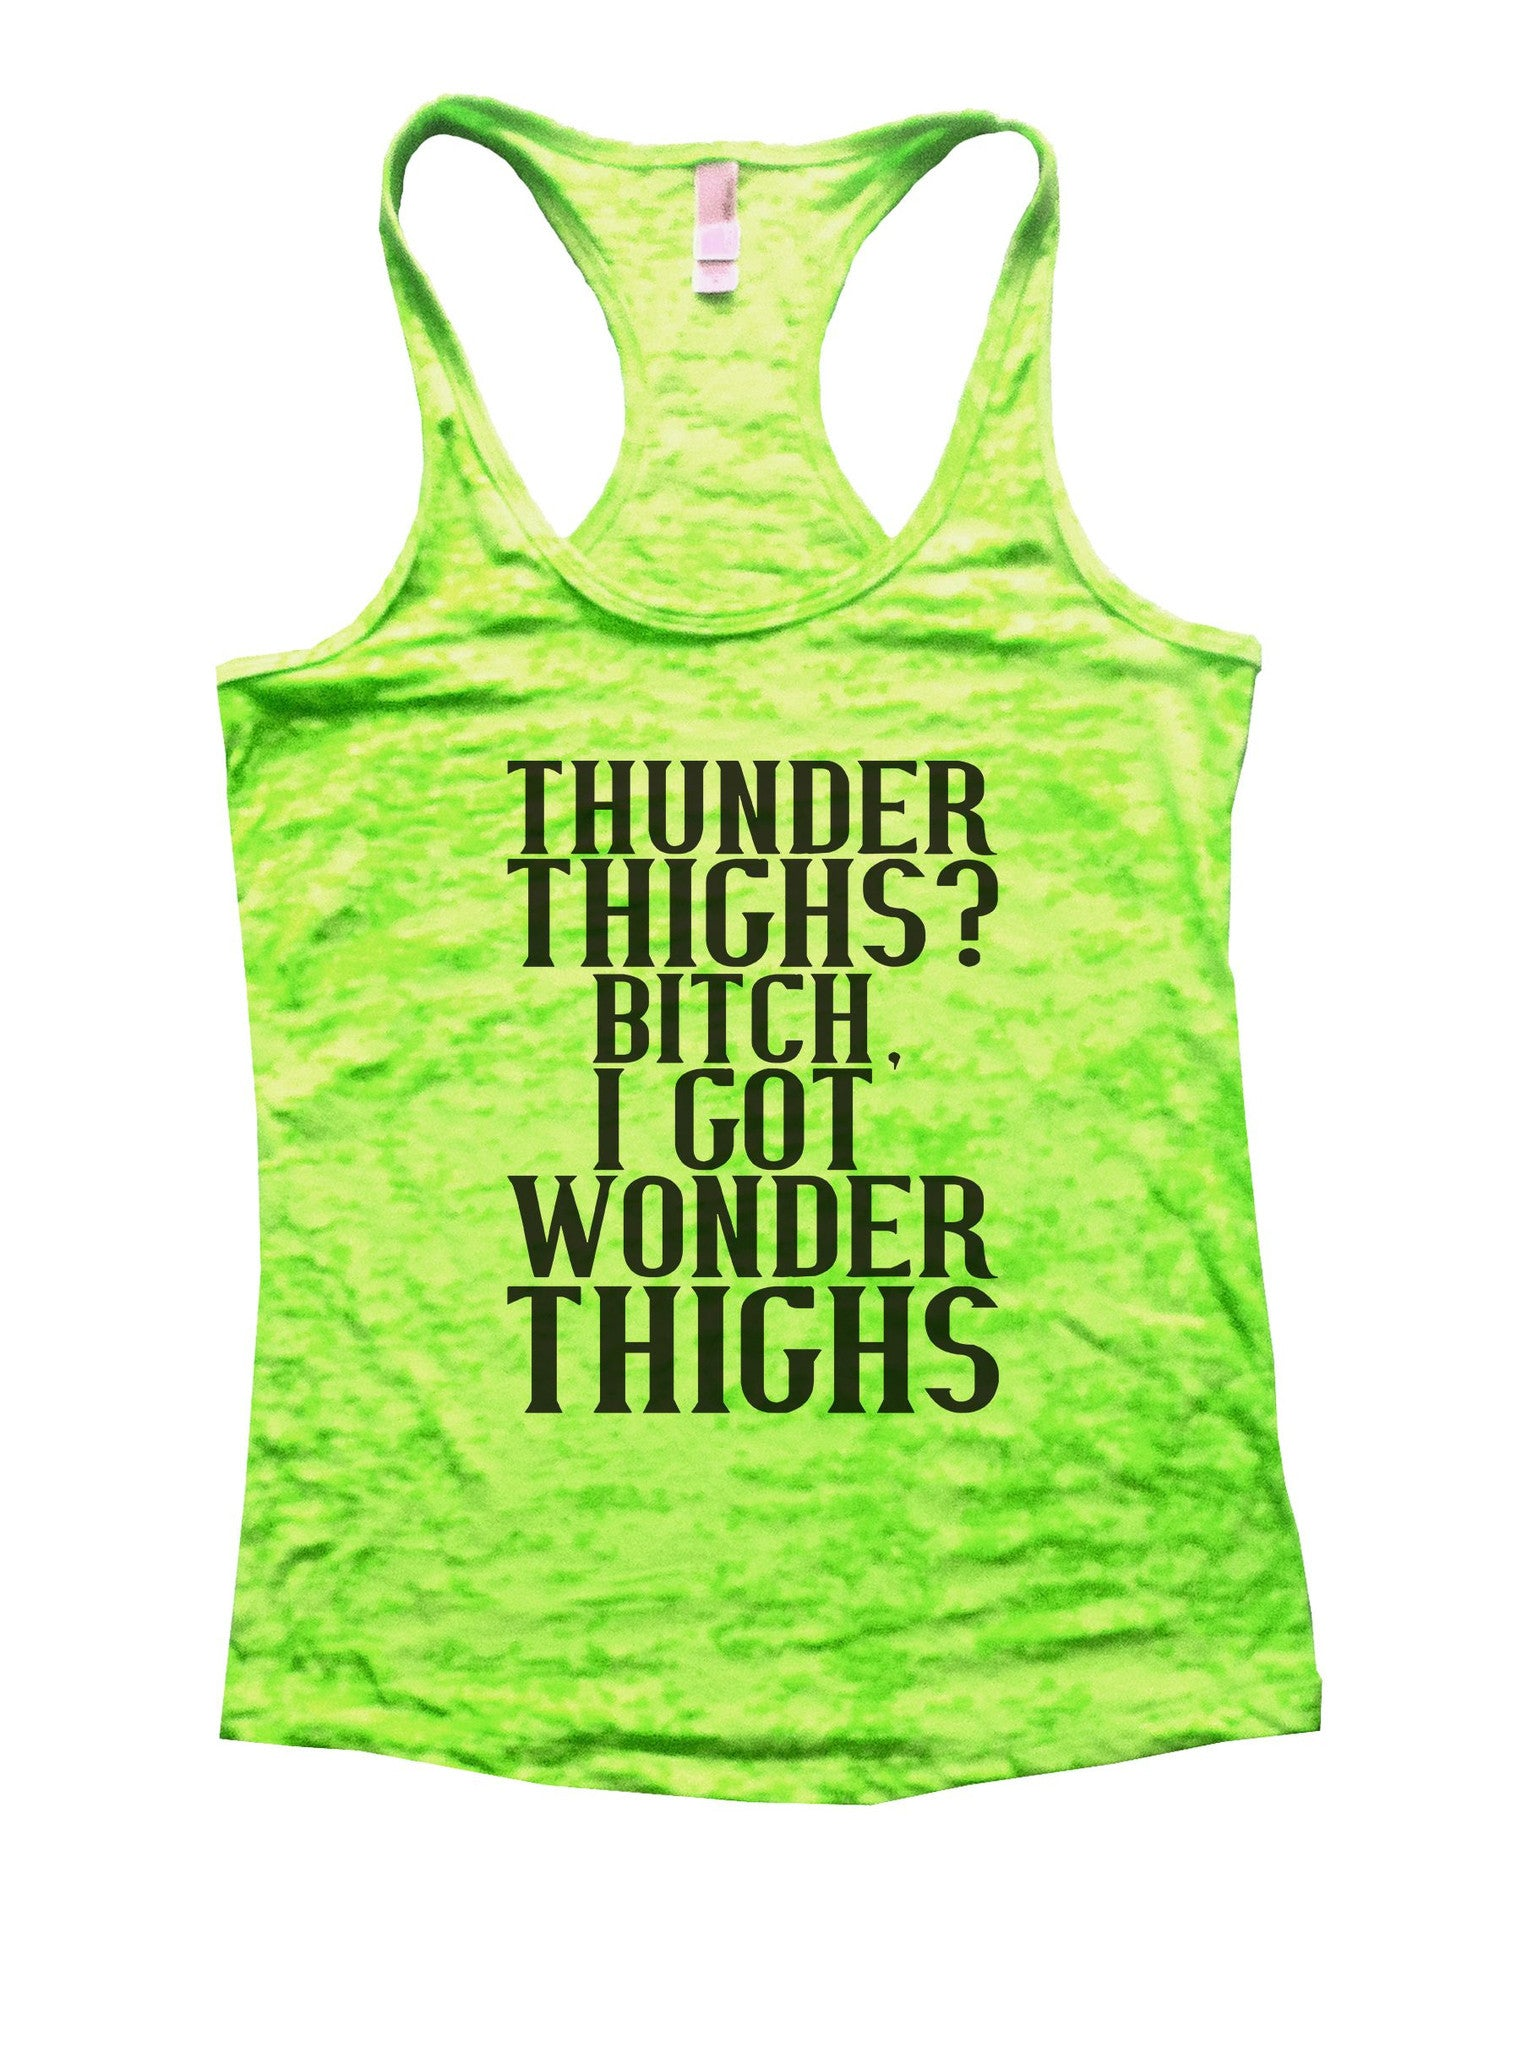 Thunder Thighs? Bitch, I Got Wonder Thighs Burnout Tank Top By BurnoutTankTops.com - 849 - Funny Shirts Tank Tops Burnouts and Triblends  - 2